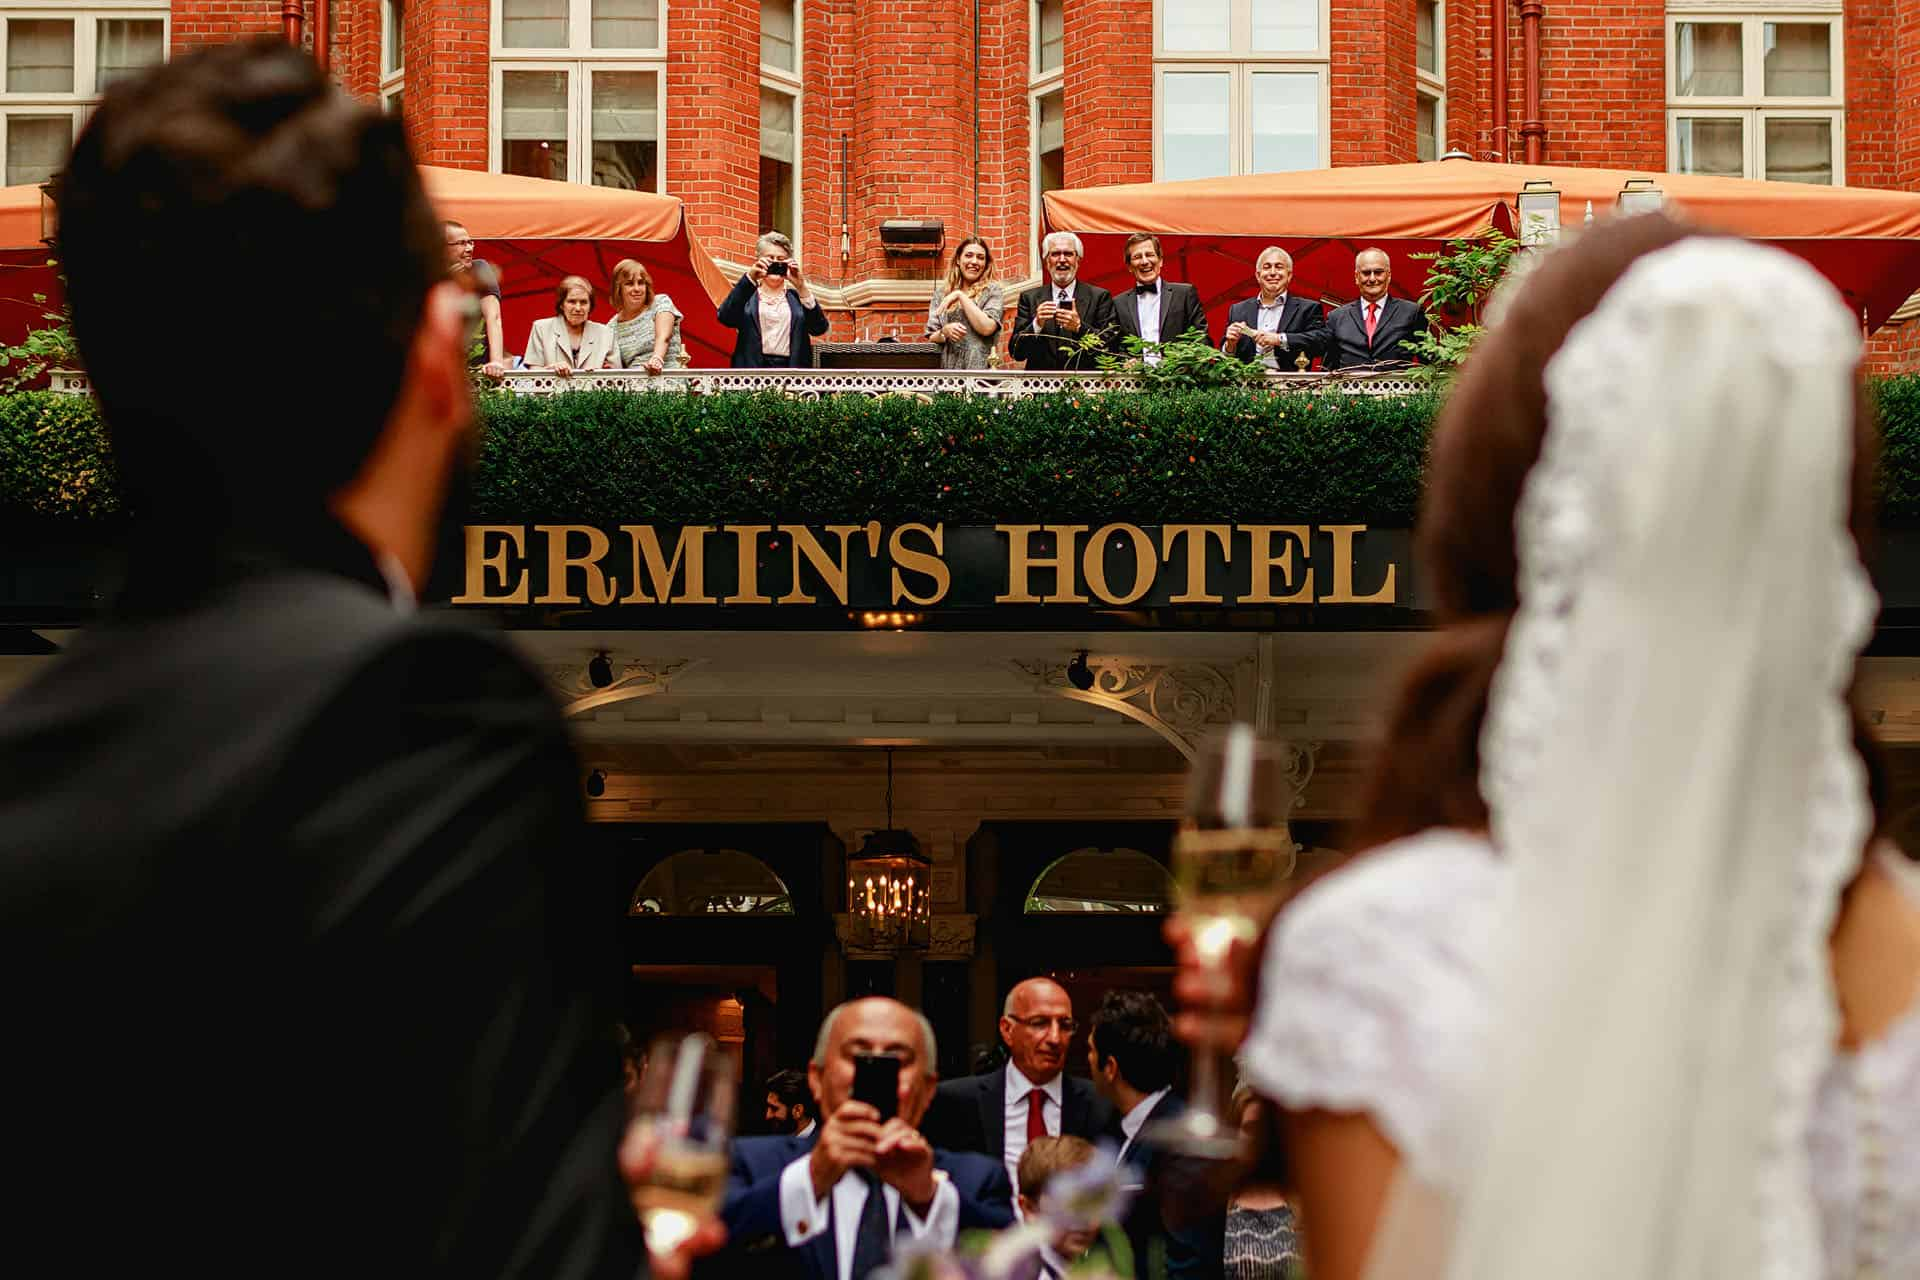 armenian wedding london st ermins hotel